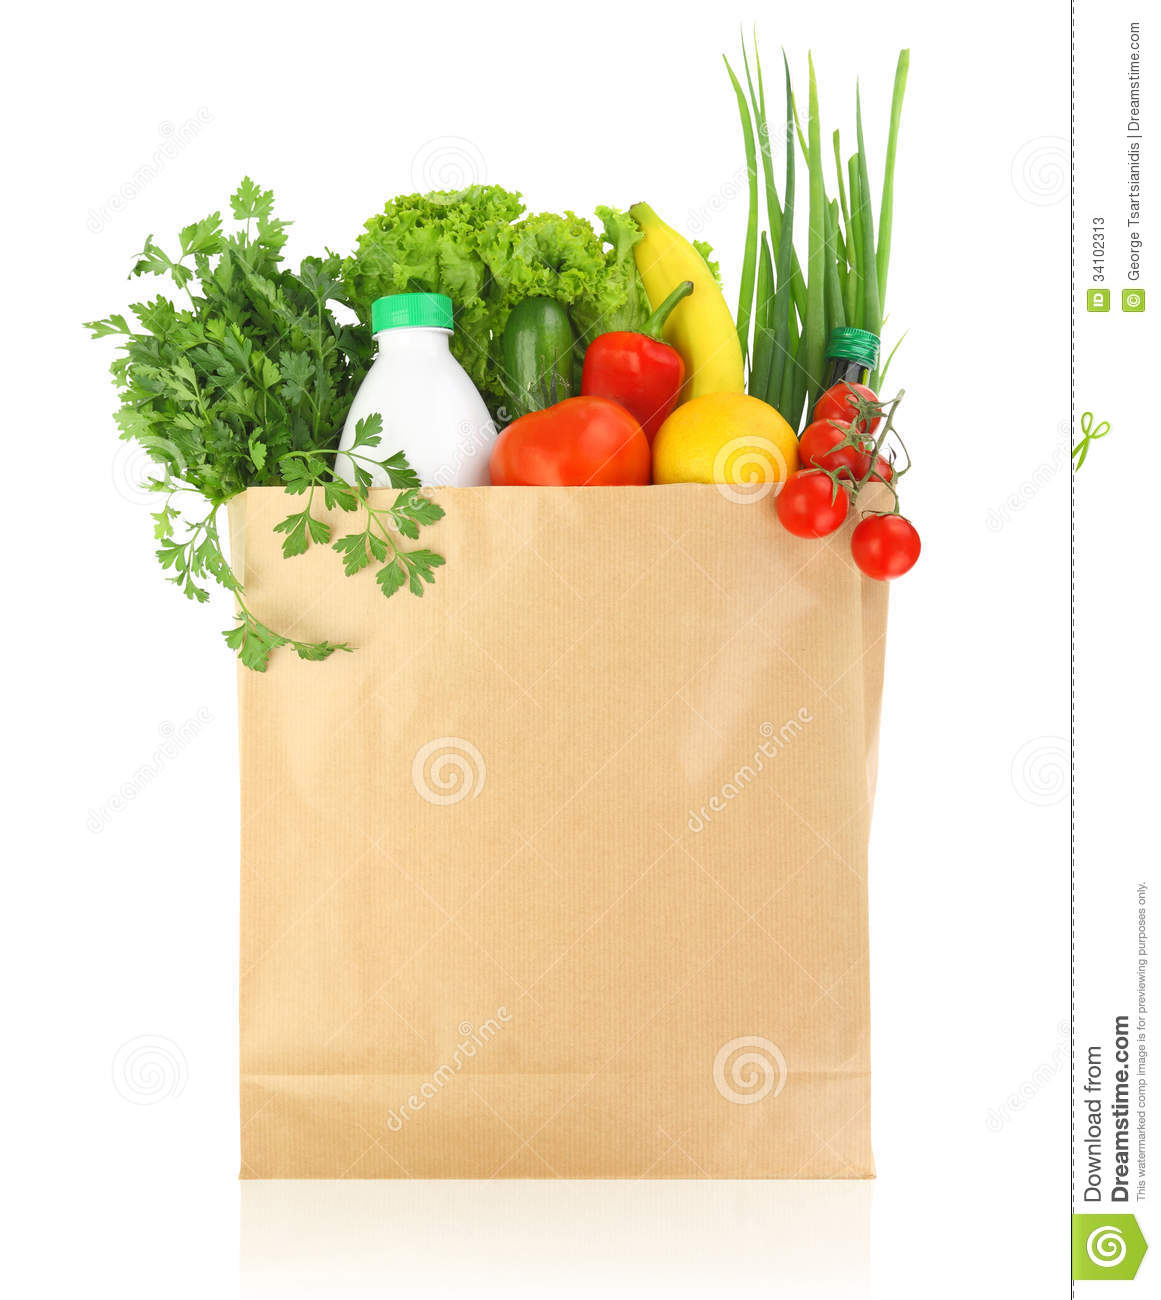 Fresh Healthy Groceries In A Bag Stock Photos - Image: 34102313